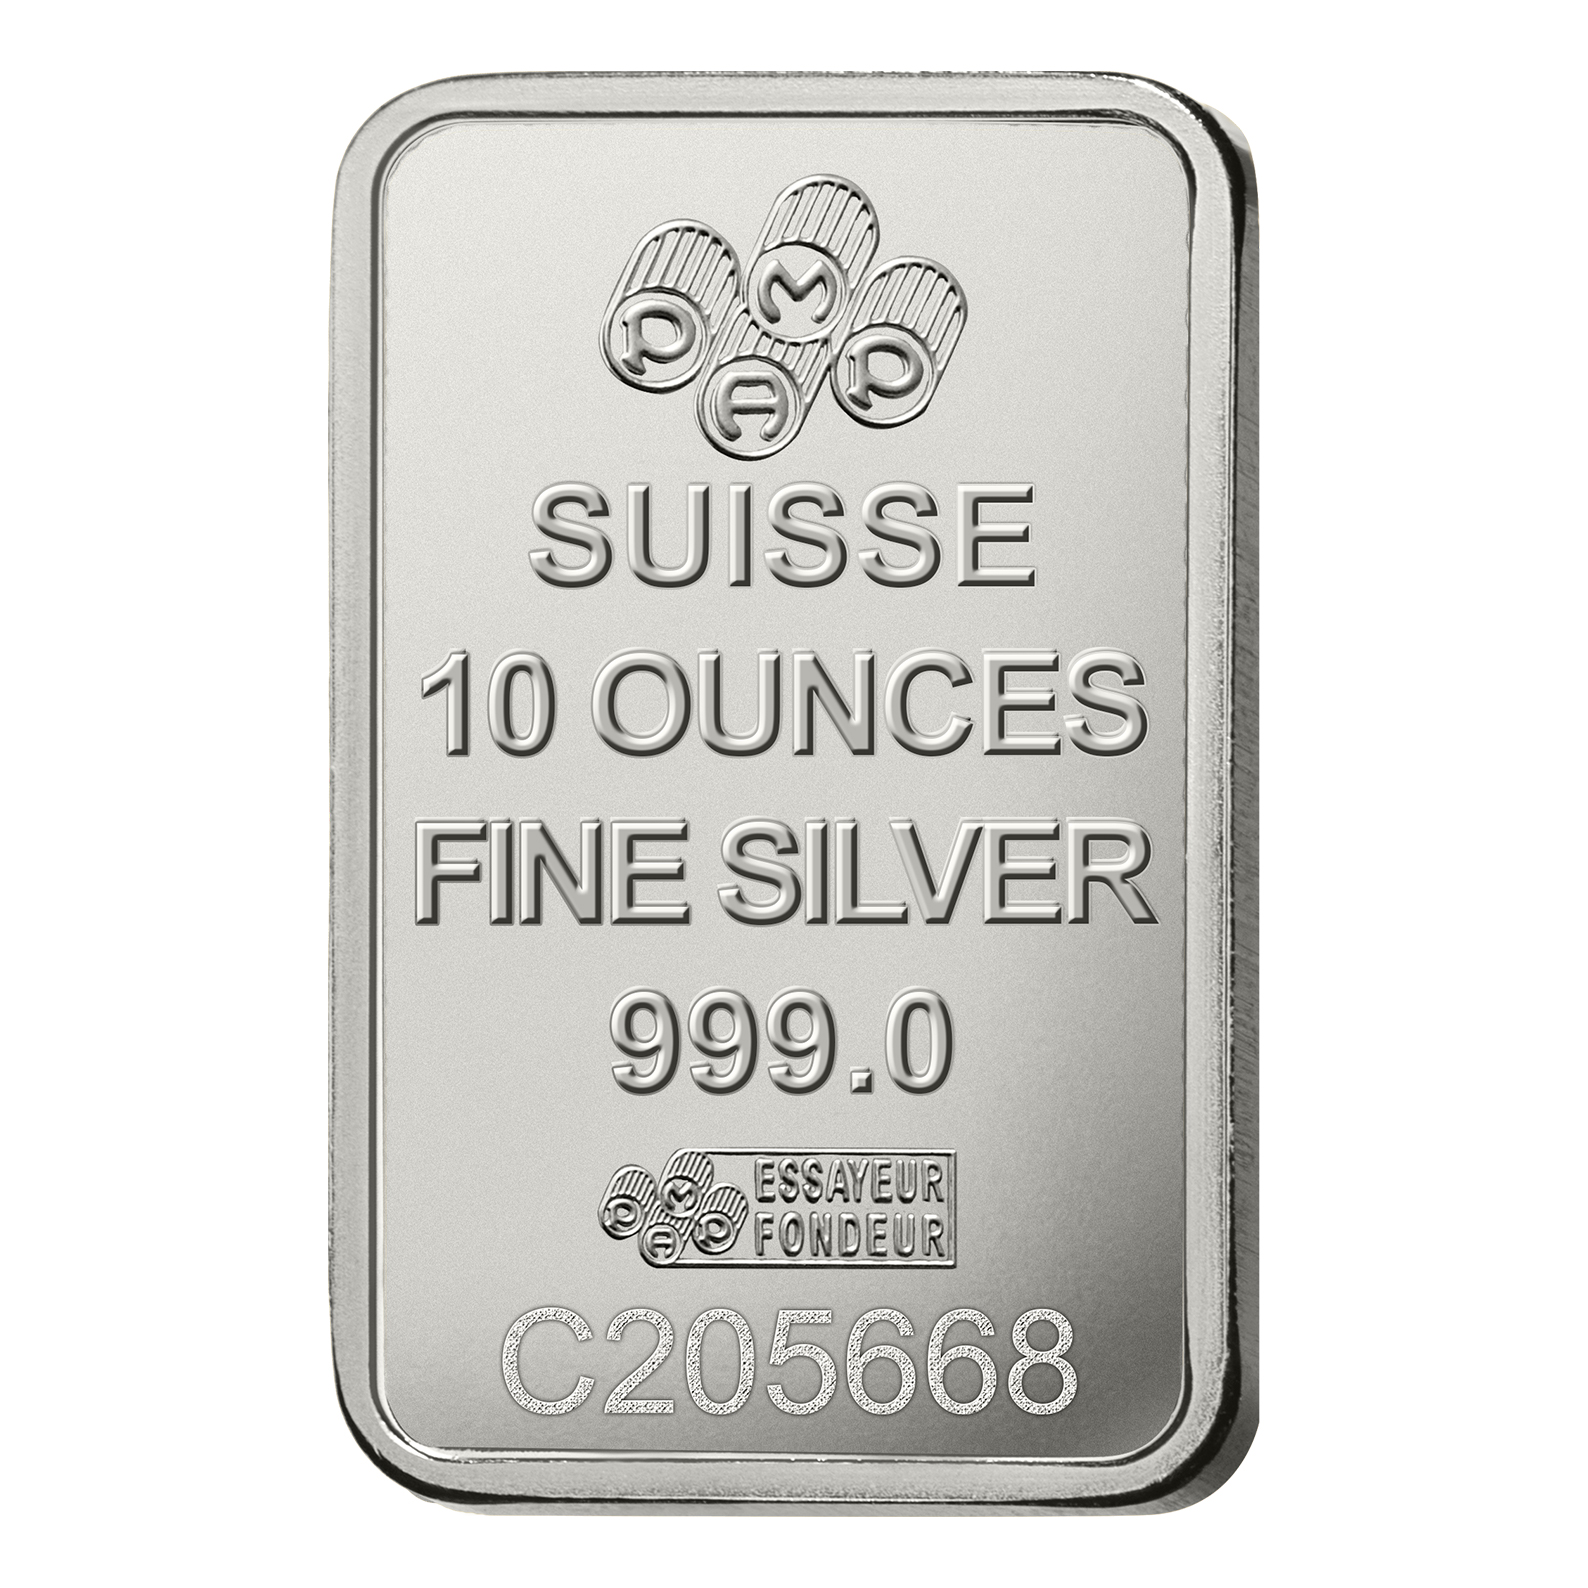 10 oz Silver Bar - PAMP Suisse Lady Fortuna